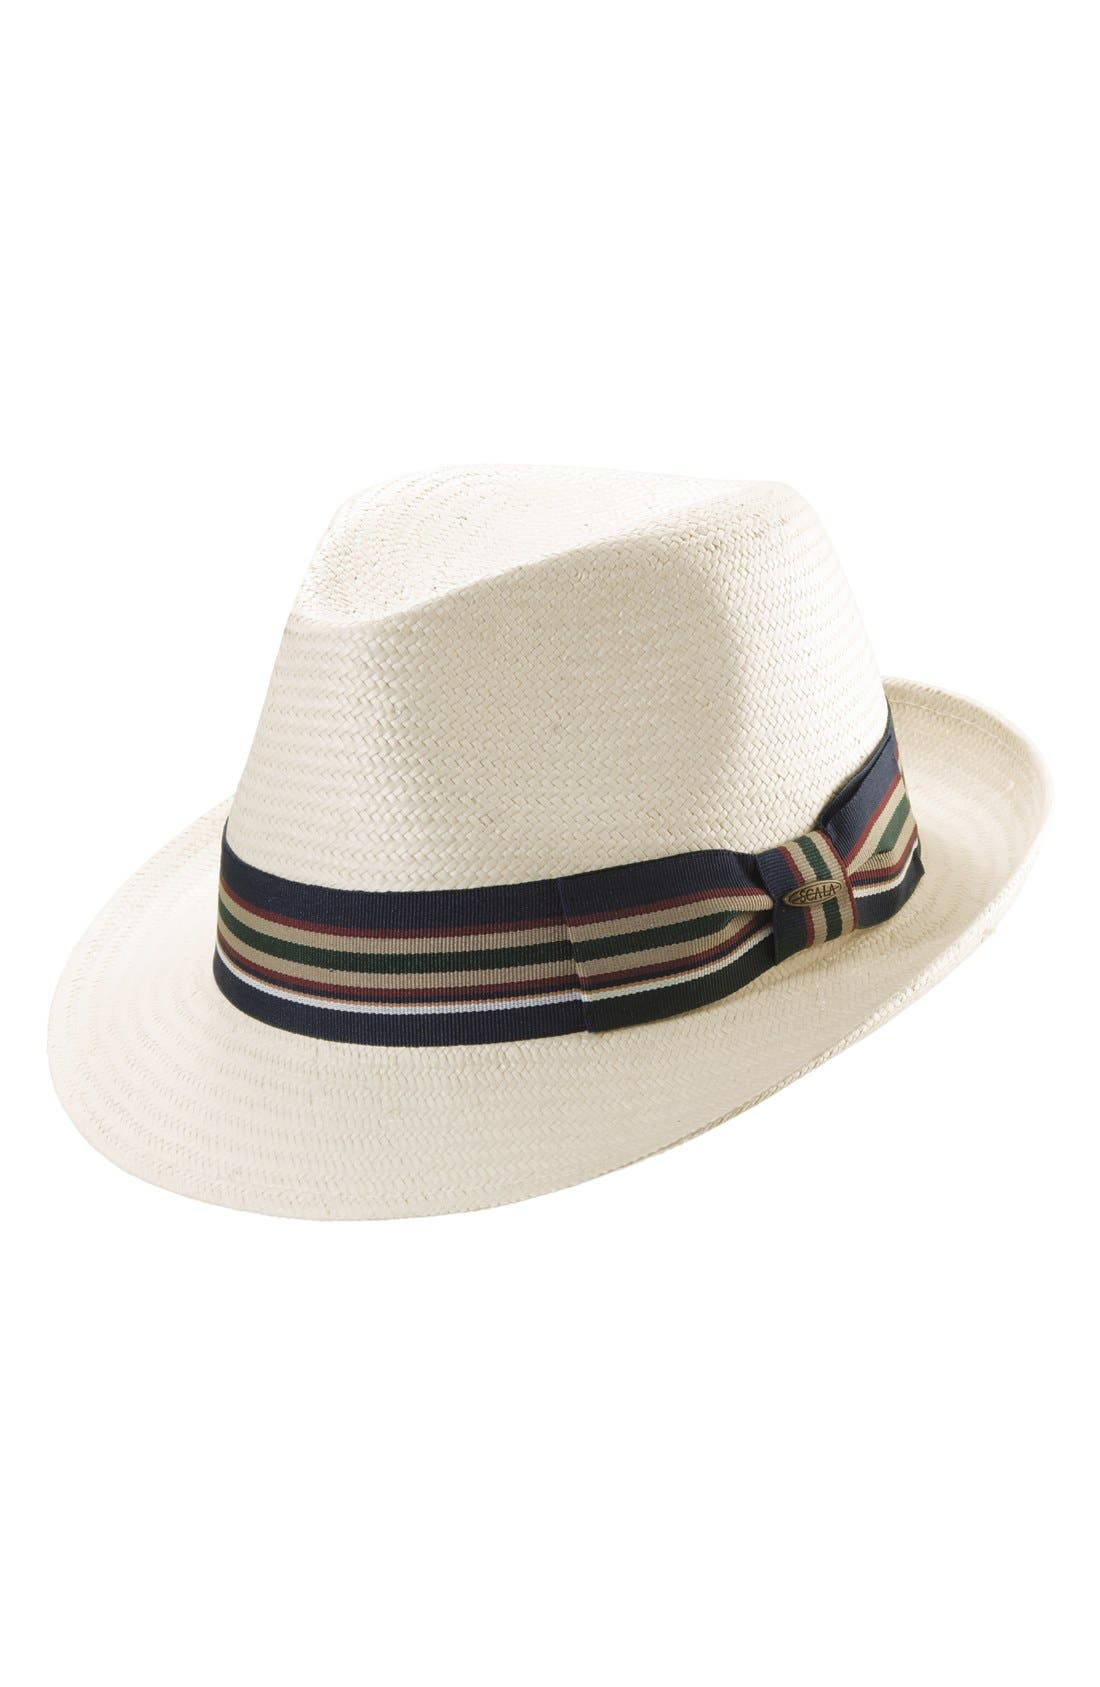 SCALA, Straw Trilby, Main thumbnail 1, color, IVORY